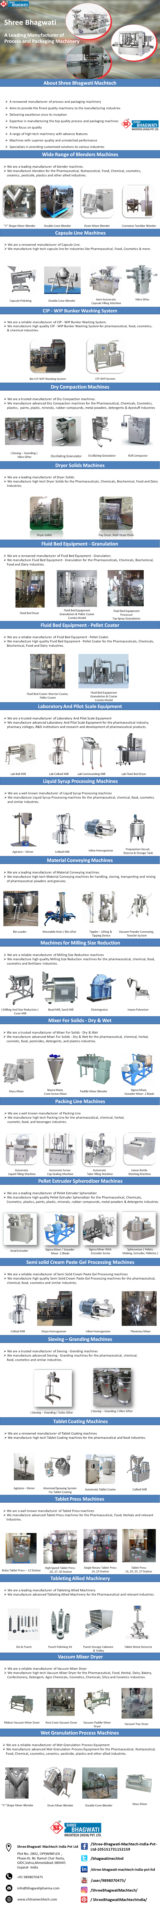 Shree Bhagwati - A Leading Manufacturer of Process and Packaging Machinery